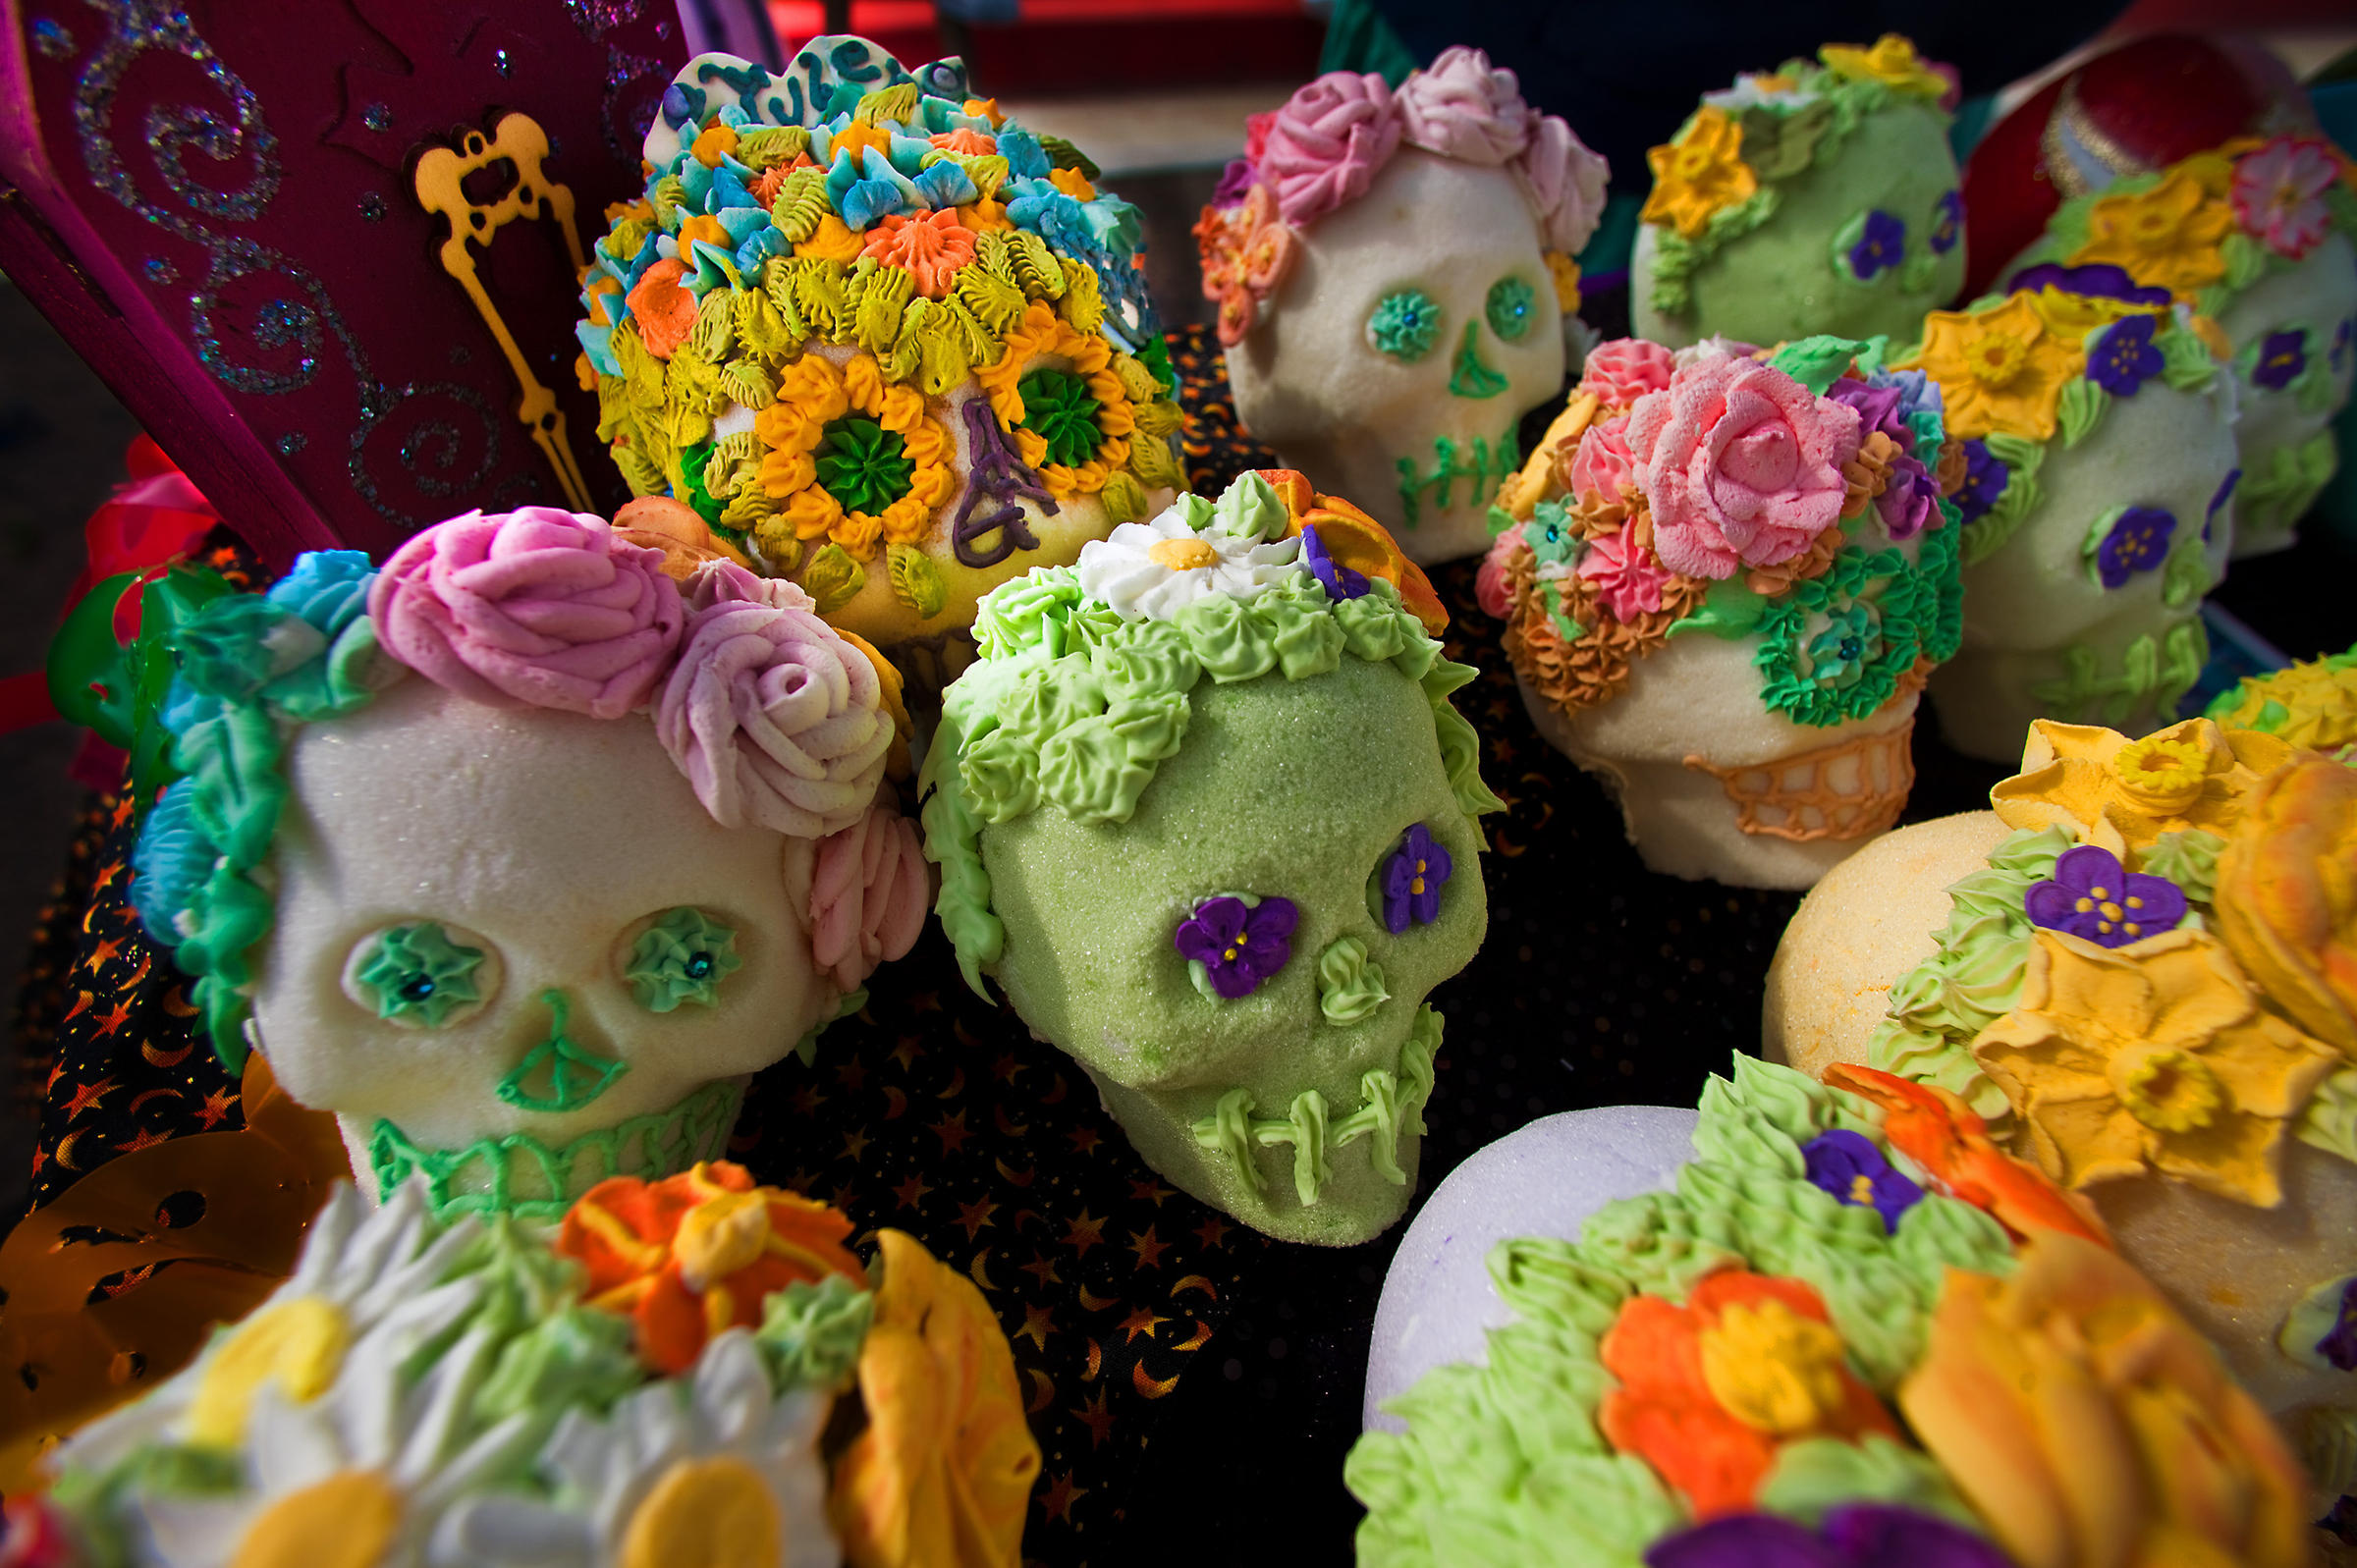 Decoding The Food And Drink On A Day Of The Dead Altar